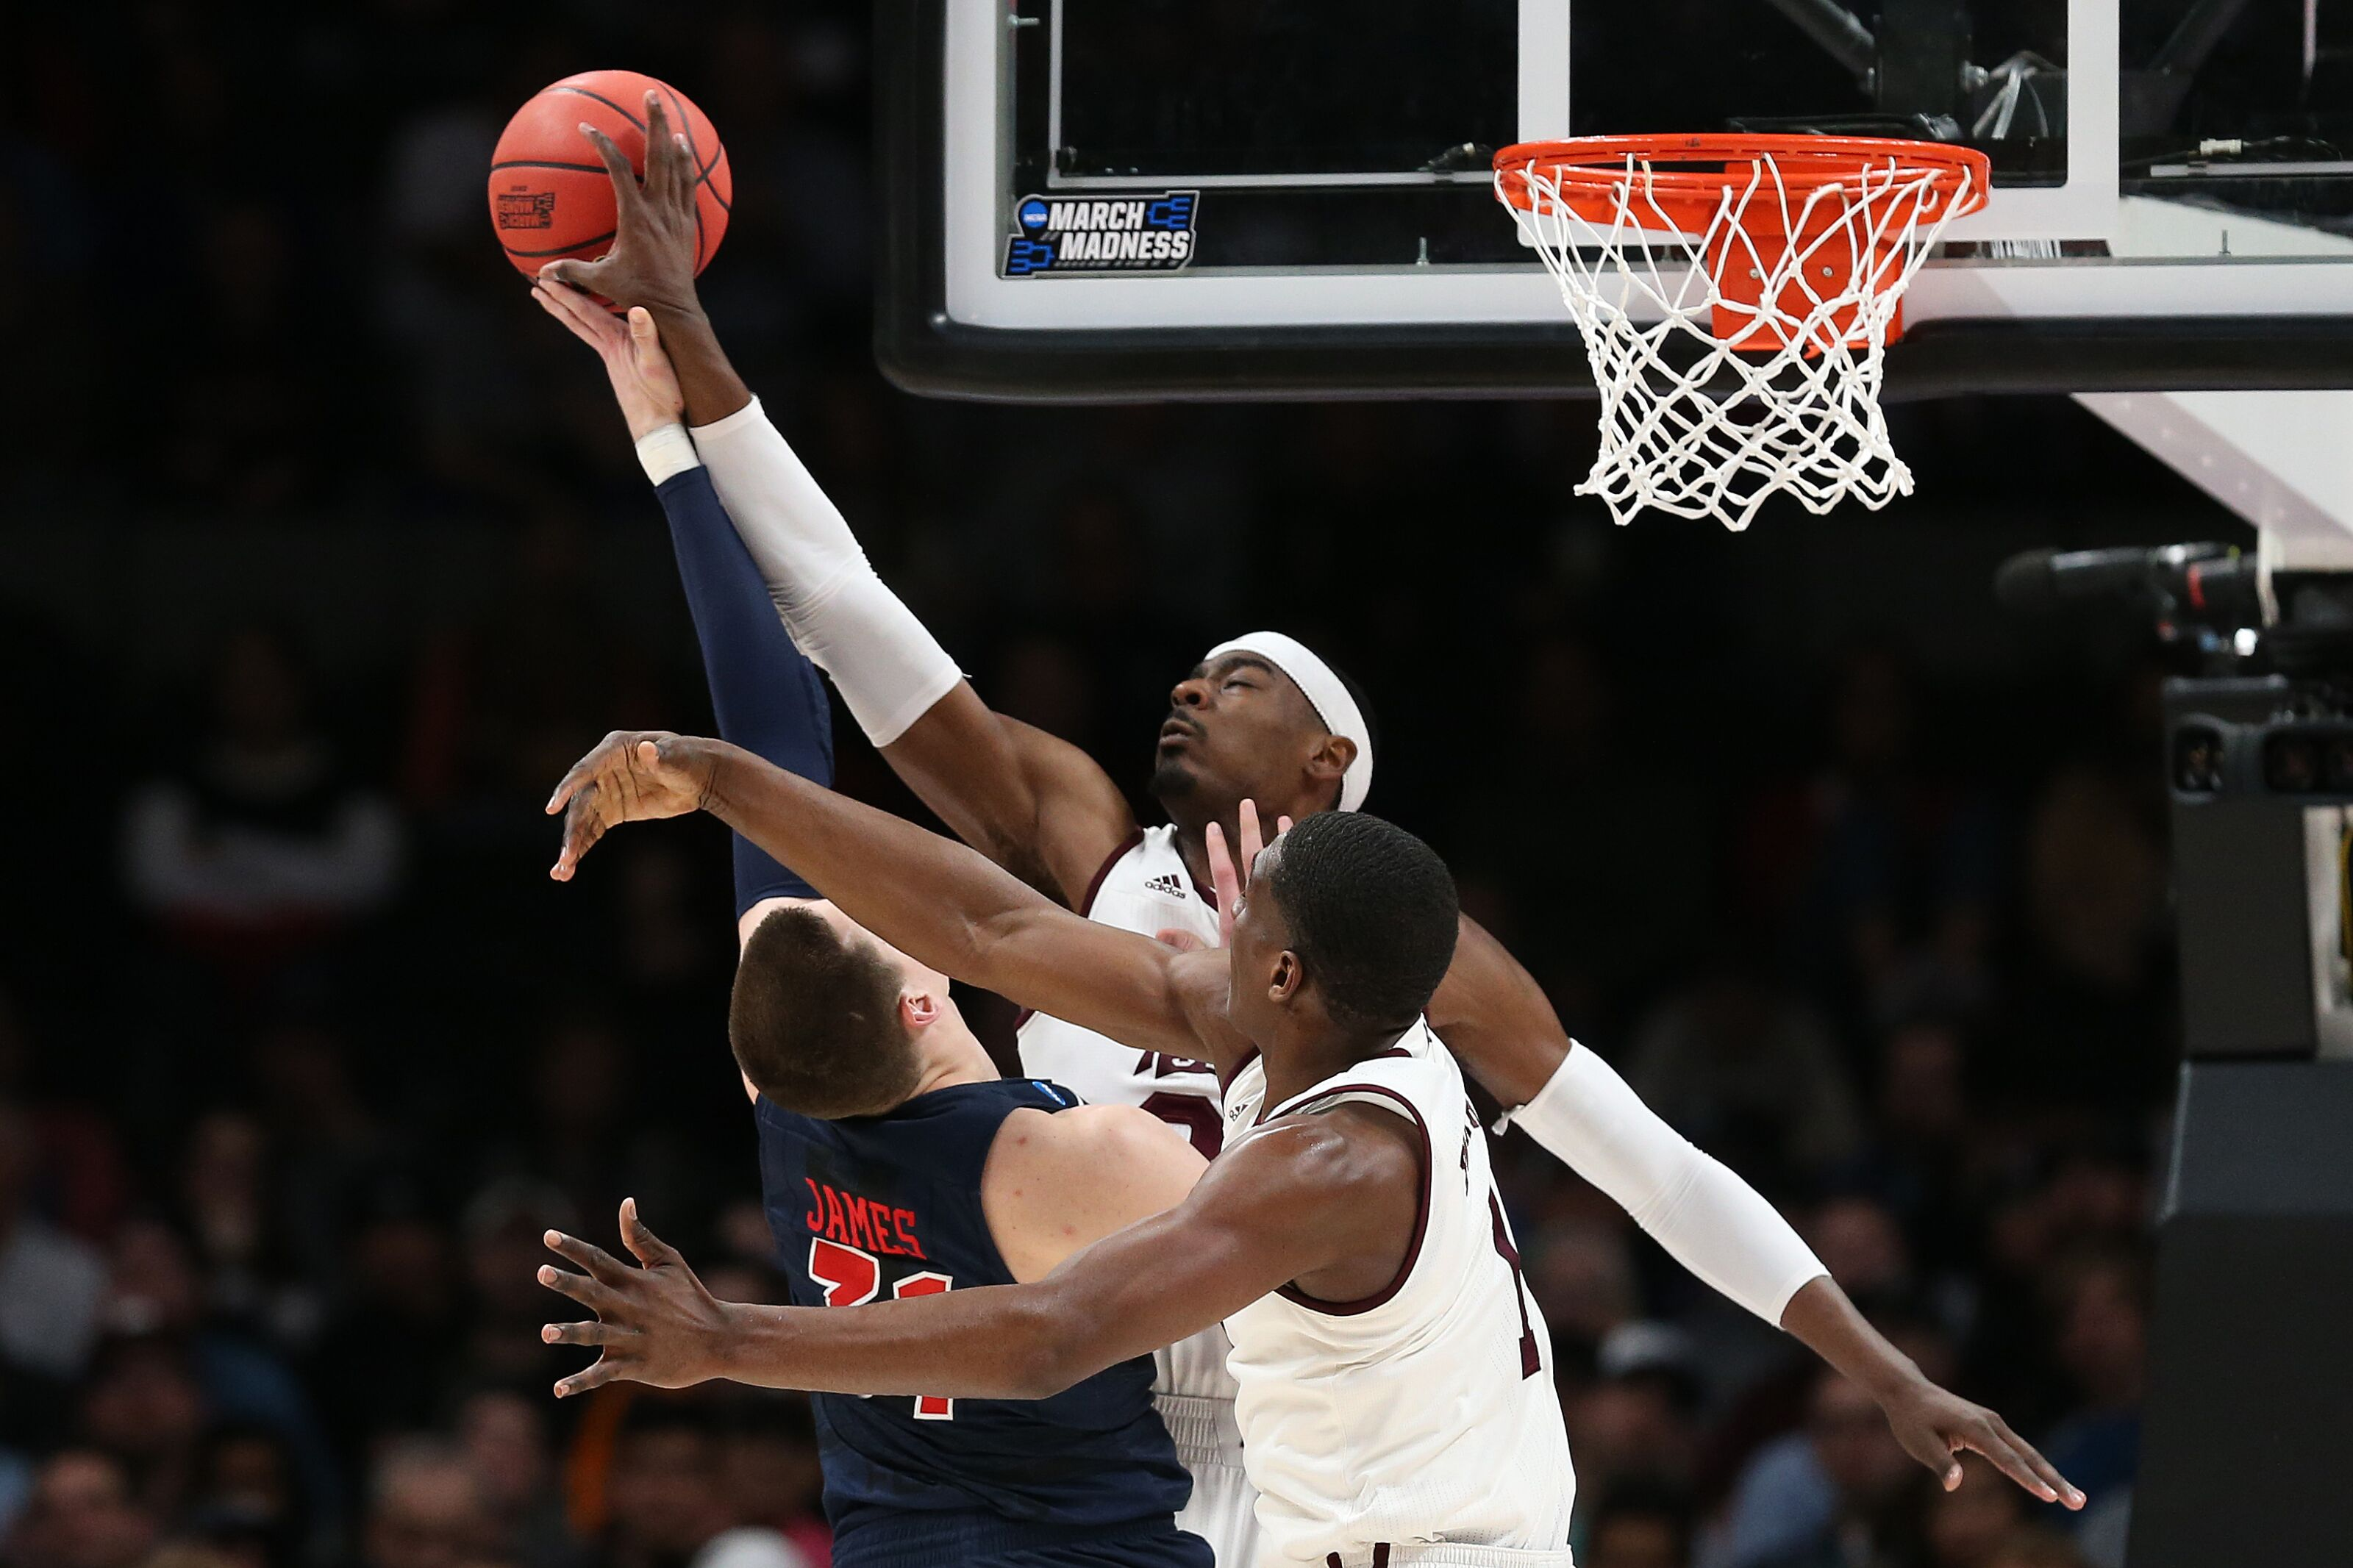 Pelicans Rumors: Two potential SEC targets for 2nd round of NBA Draft